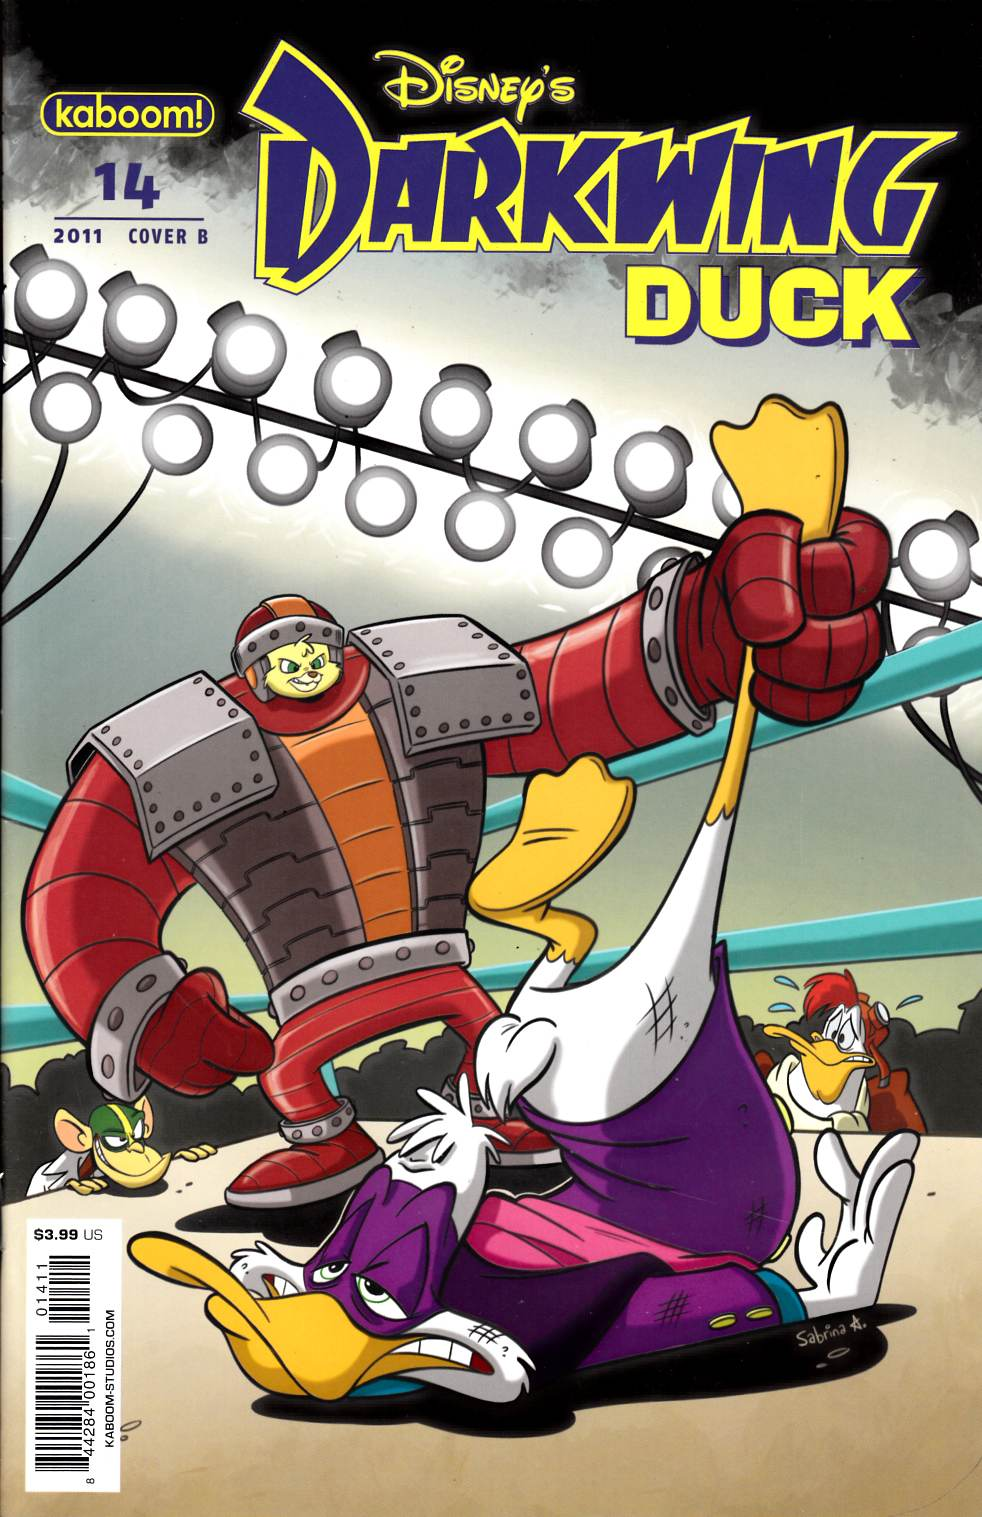 Darkwing Duck #14 Cover B Very Fine Plus (8.5) [Boom Comic] THUMBNAIL